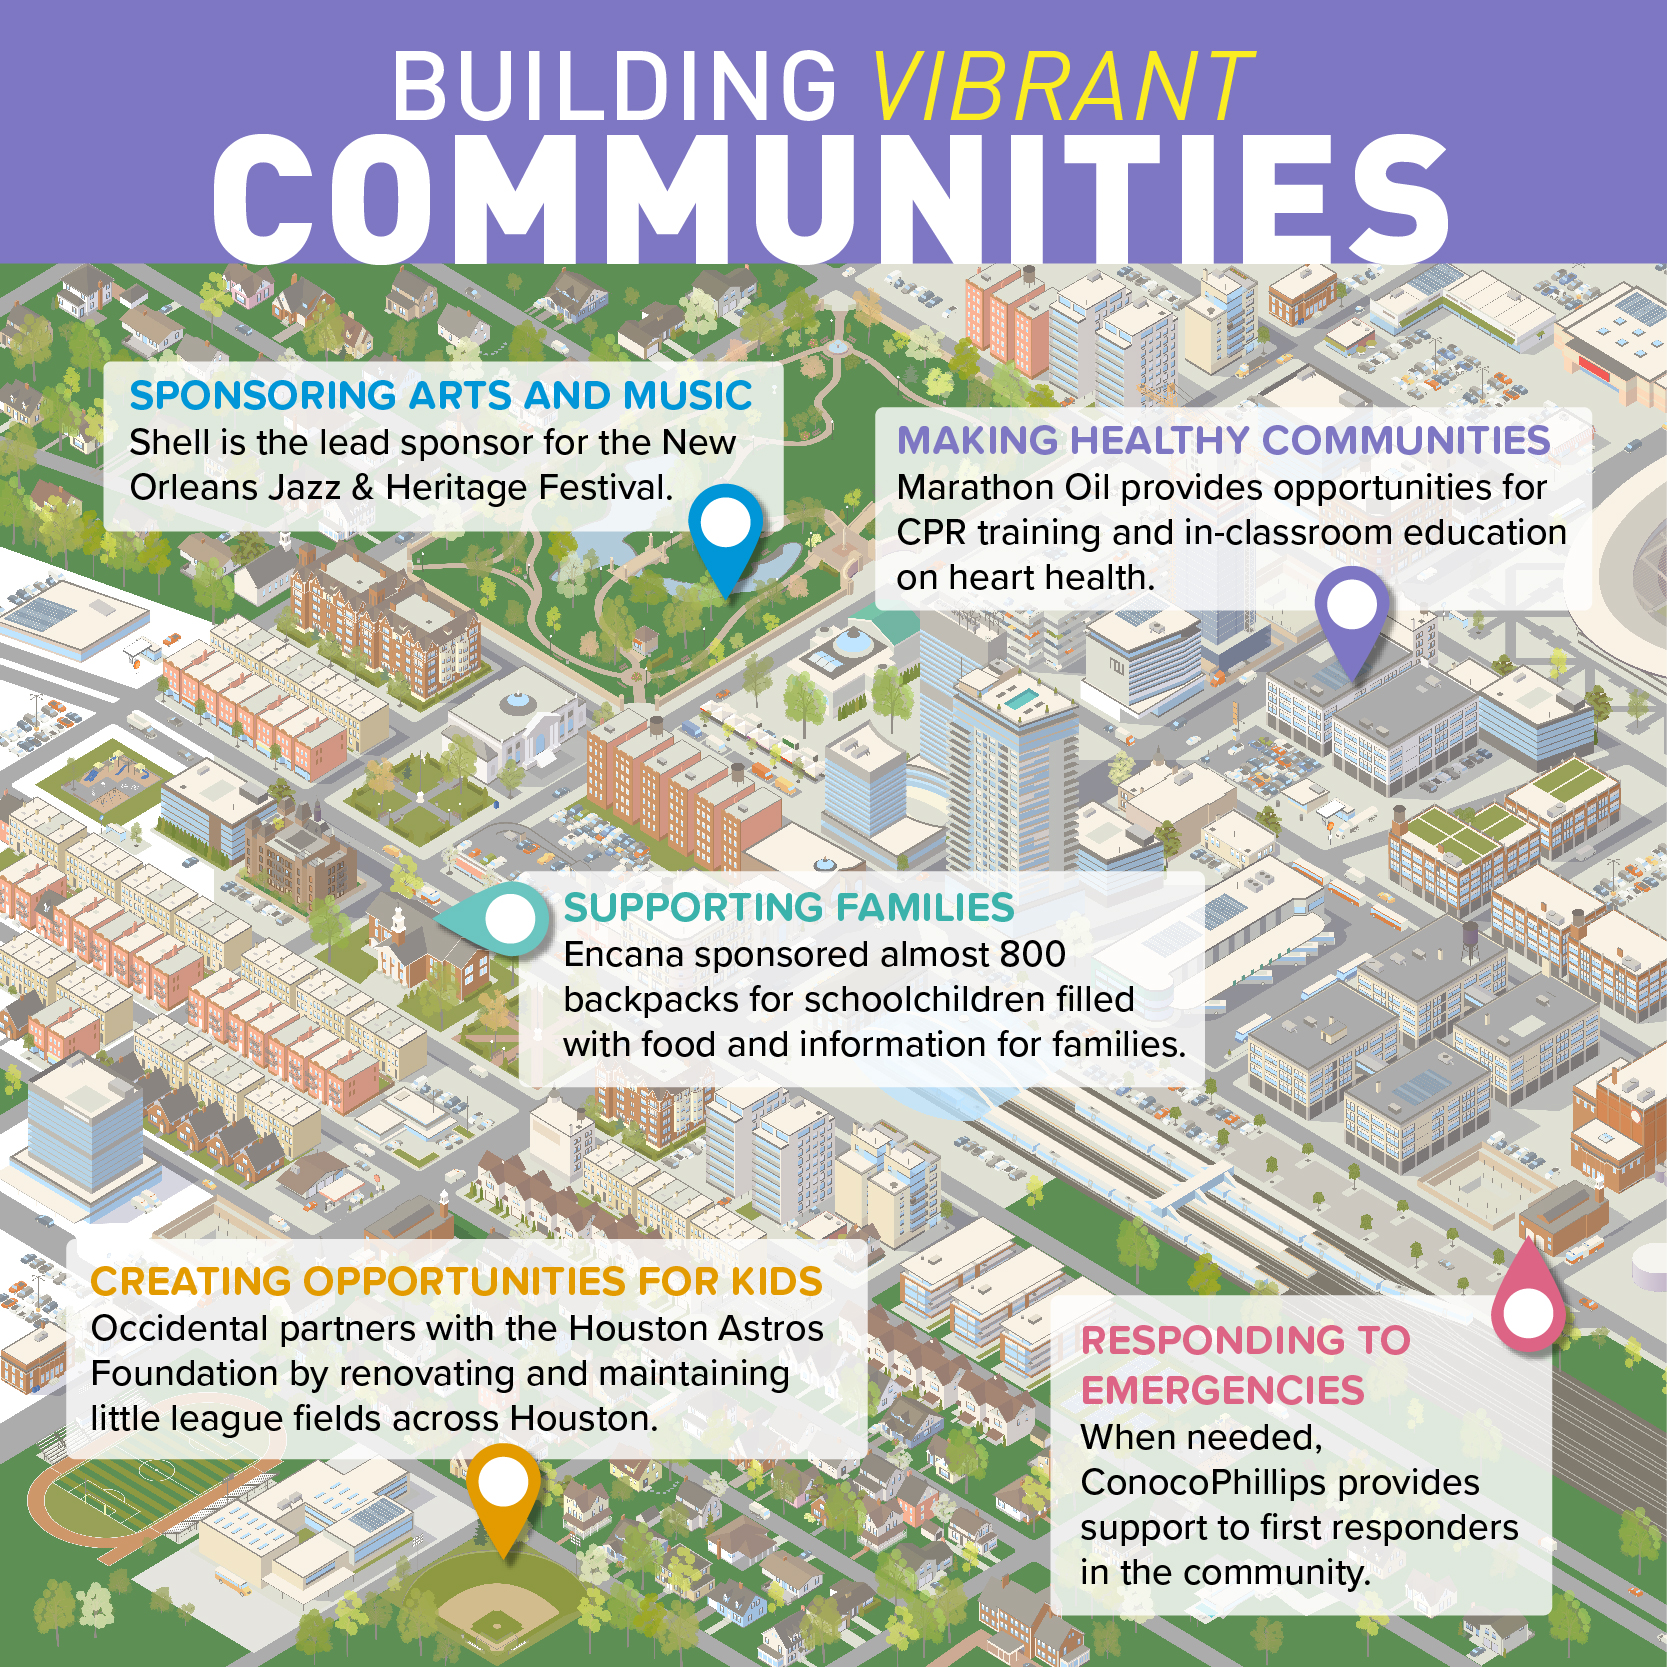 oil and gas in communities